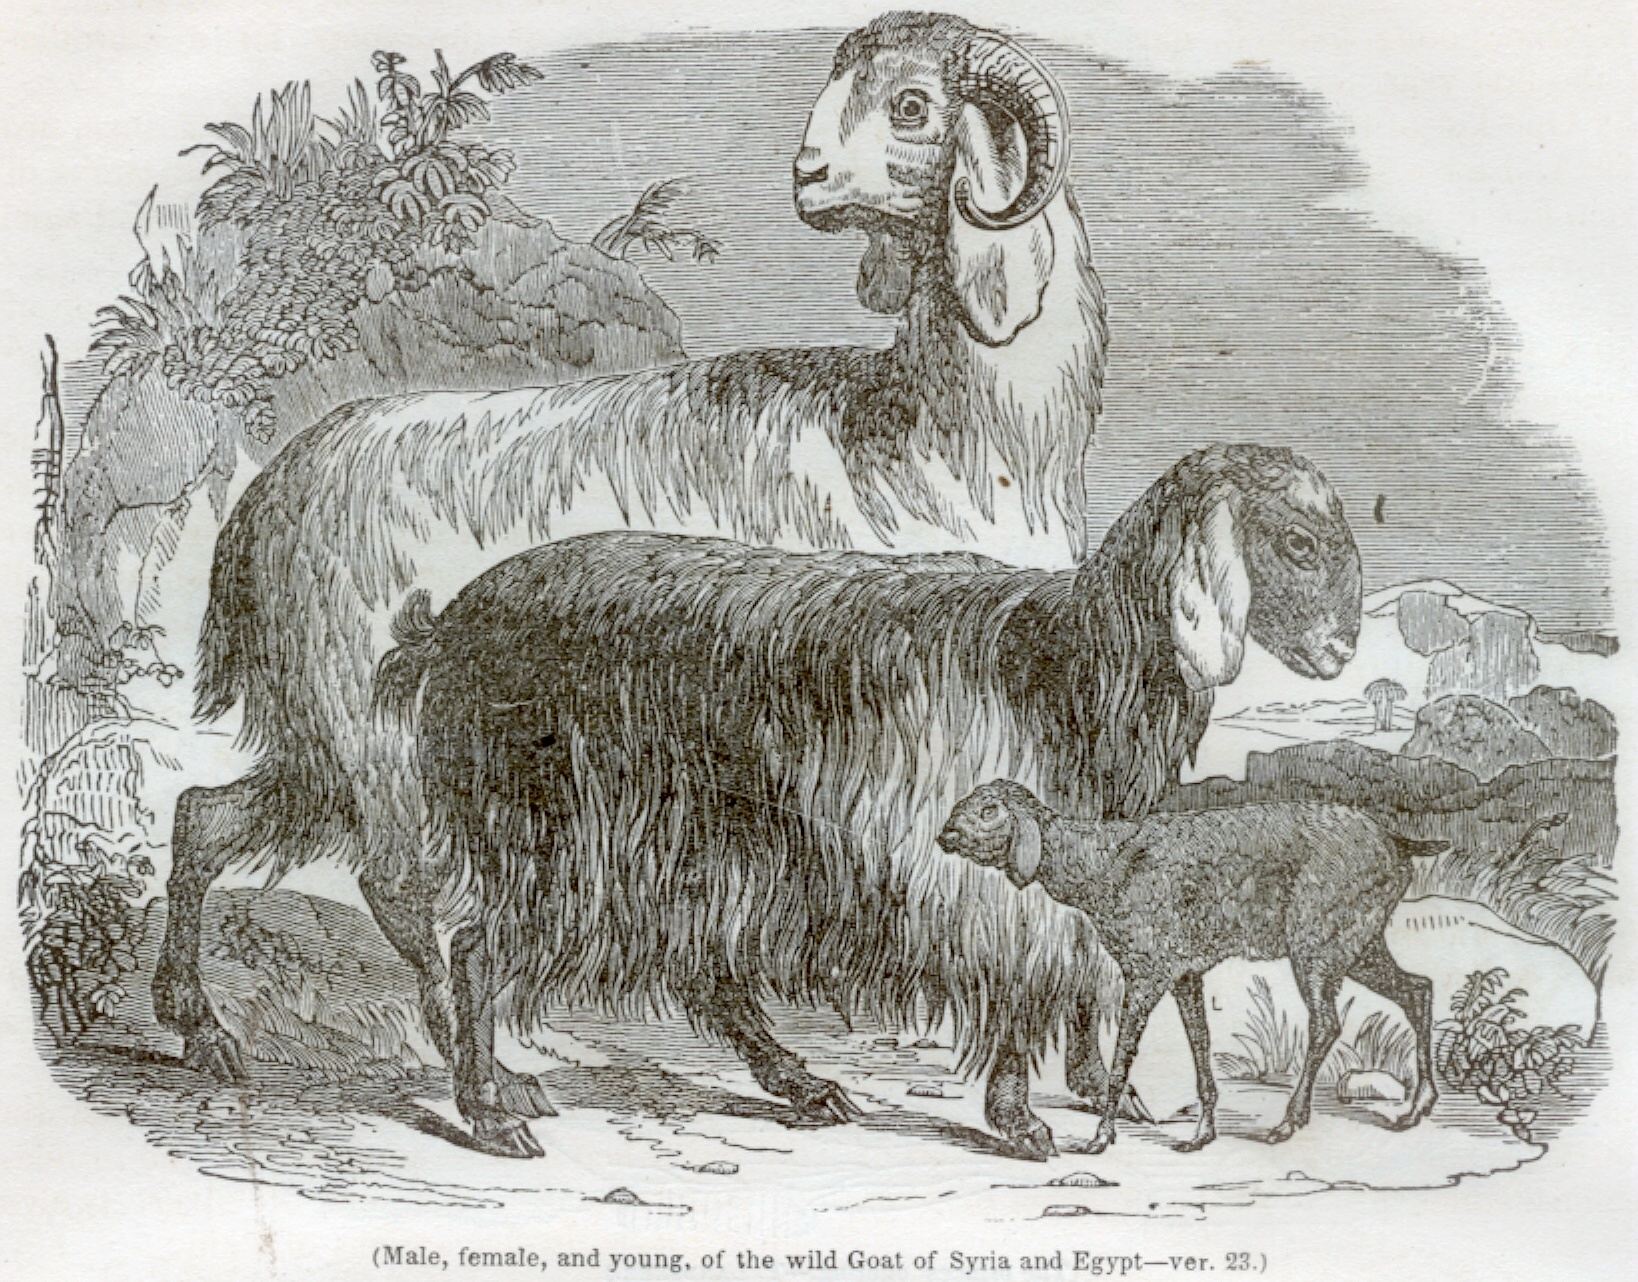 Male, female, and young, of the Wild Goat of Syria and Egypt